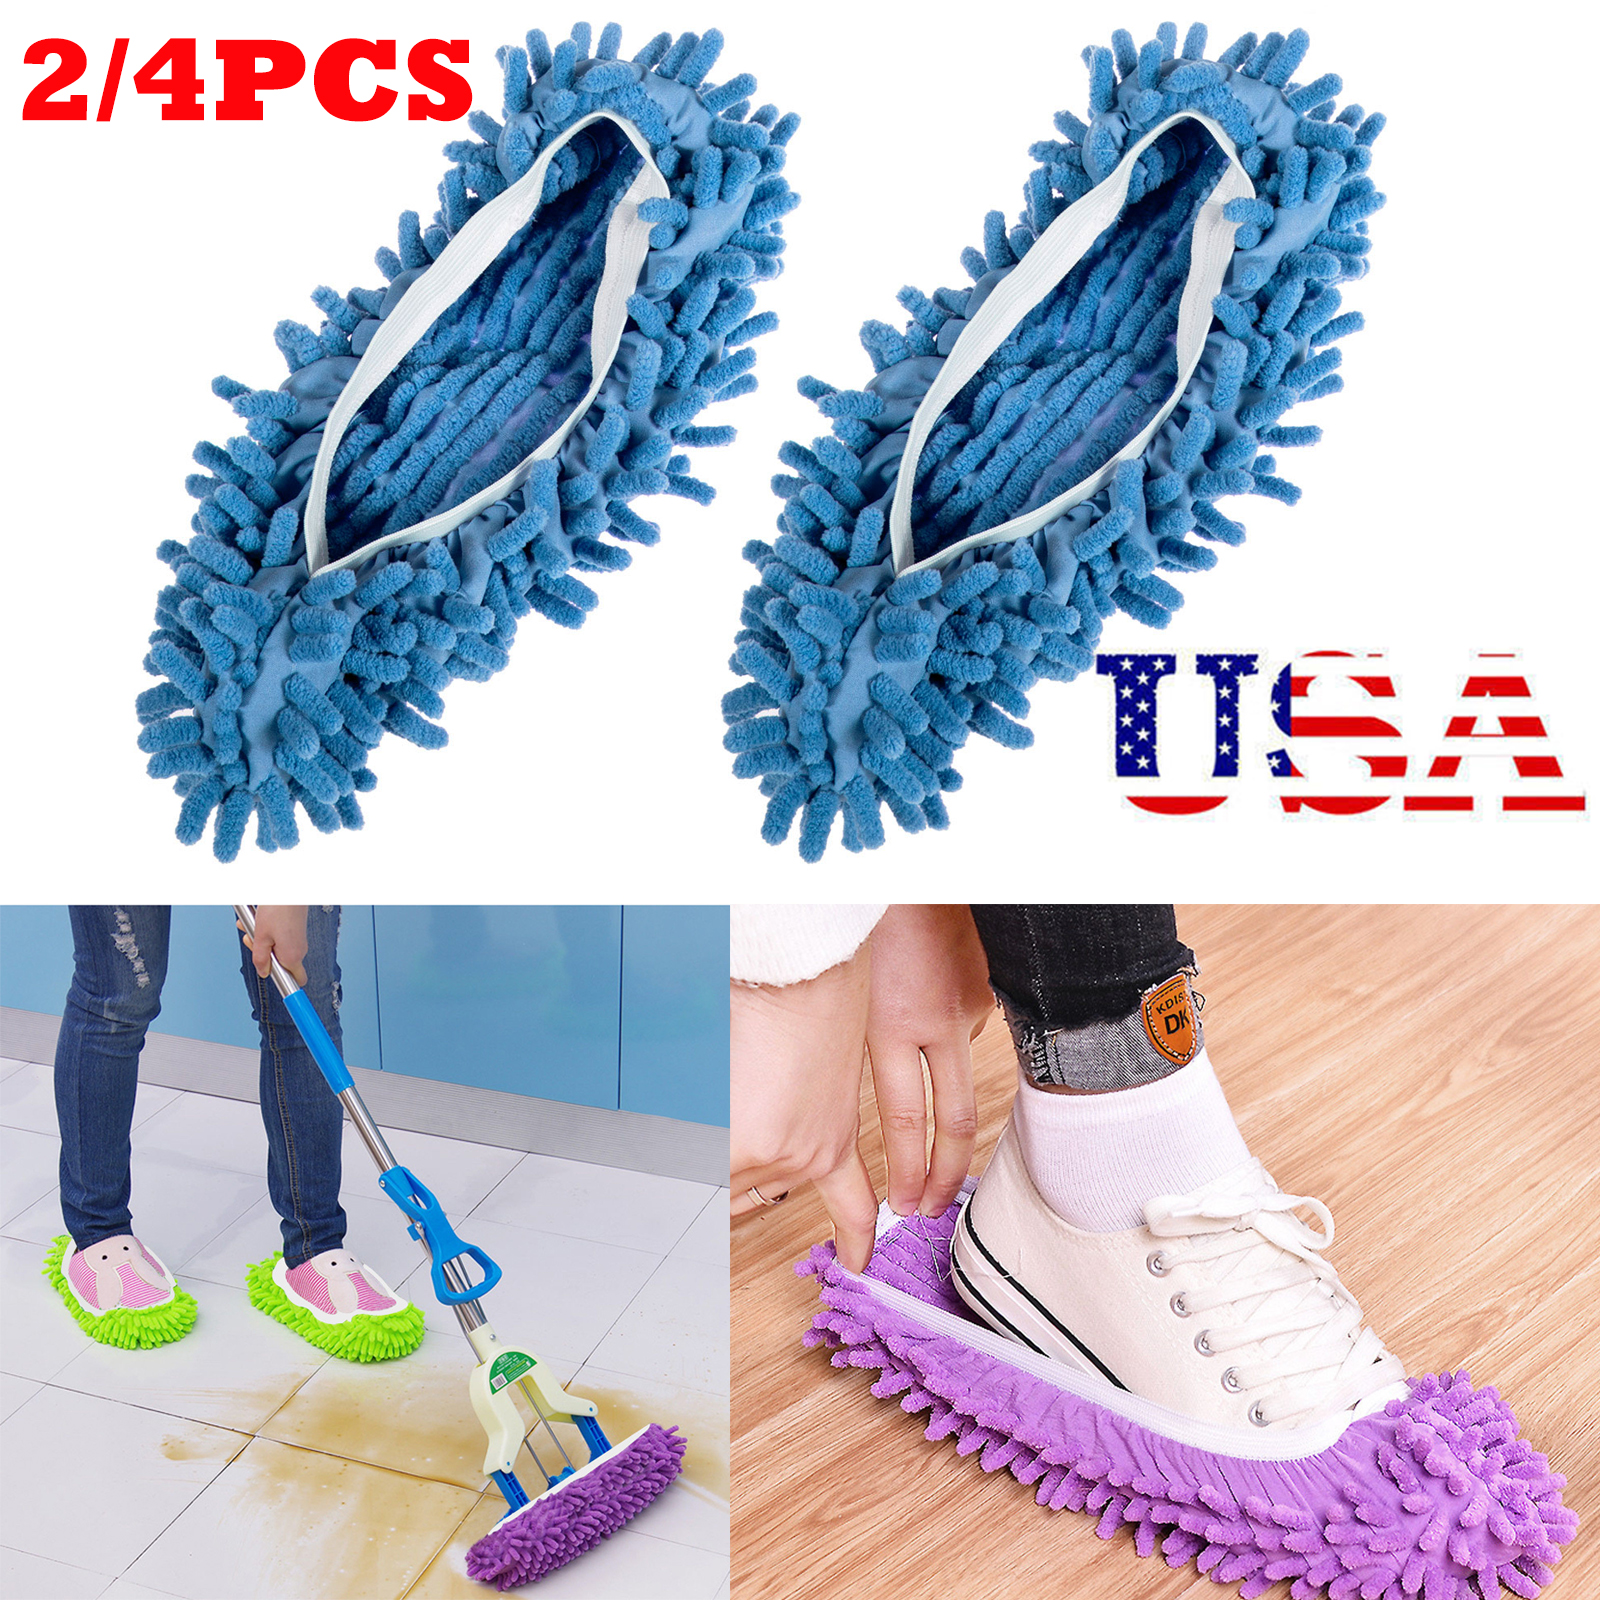 2-4Pcs-Mop-Slippers-Lazy-Floor-Foot-Socks-Shoes-Quick-Polishing-Cleaning-Dust